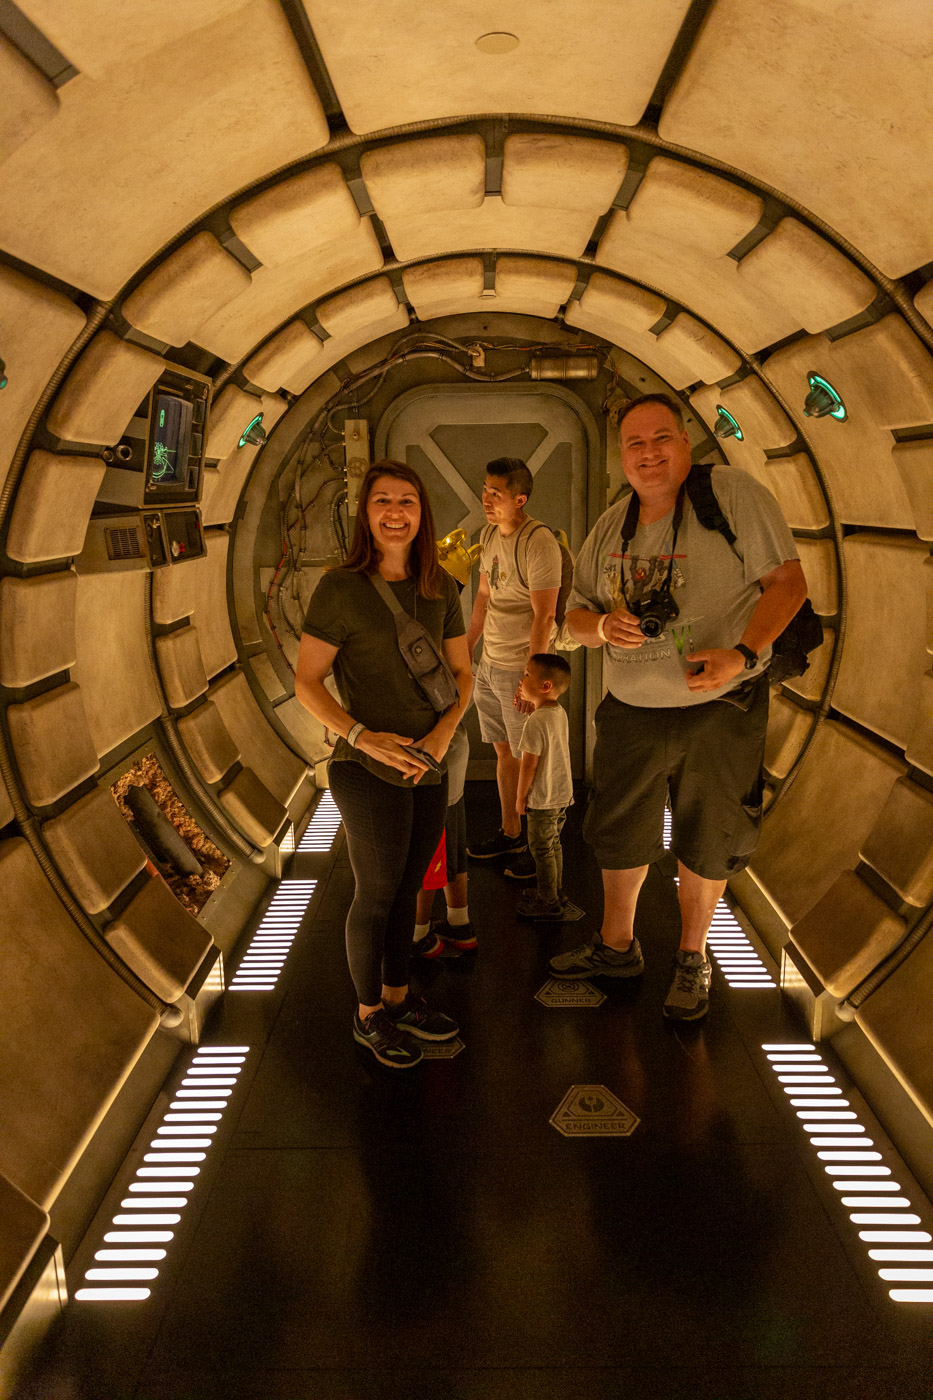 Smuggler's Run Queue inside Star Wars Land at Disneyland. Galaxy's Edge at Disneyland. Inside the Millennium Falcon